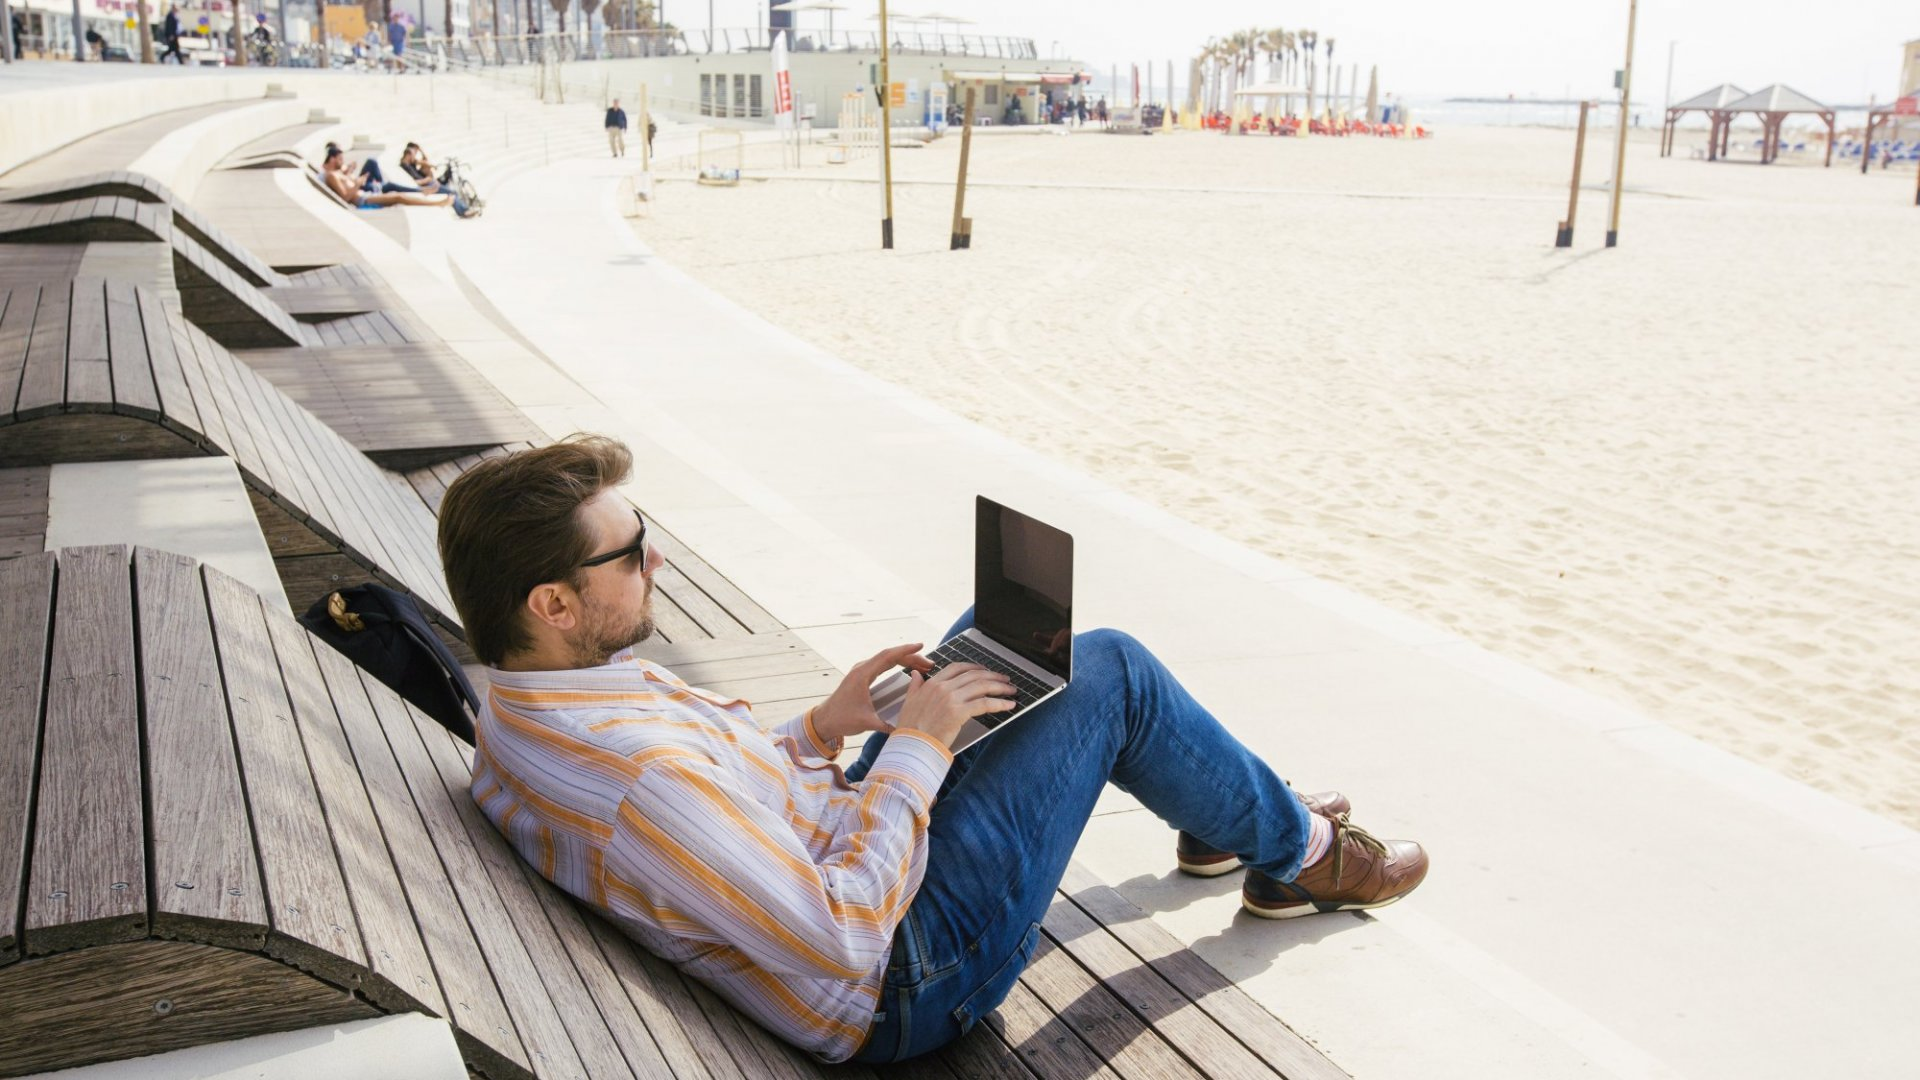 Suffering from a Summer Slowdown? Speed Up Your Productivity with These Tips.